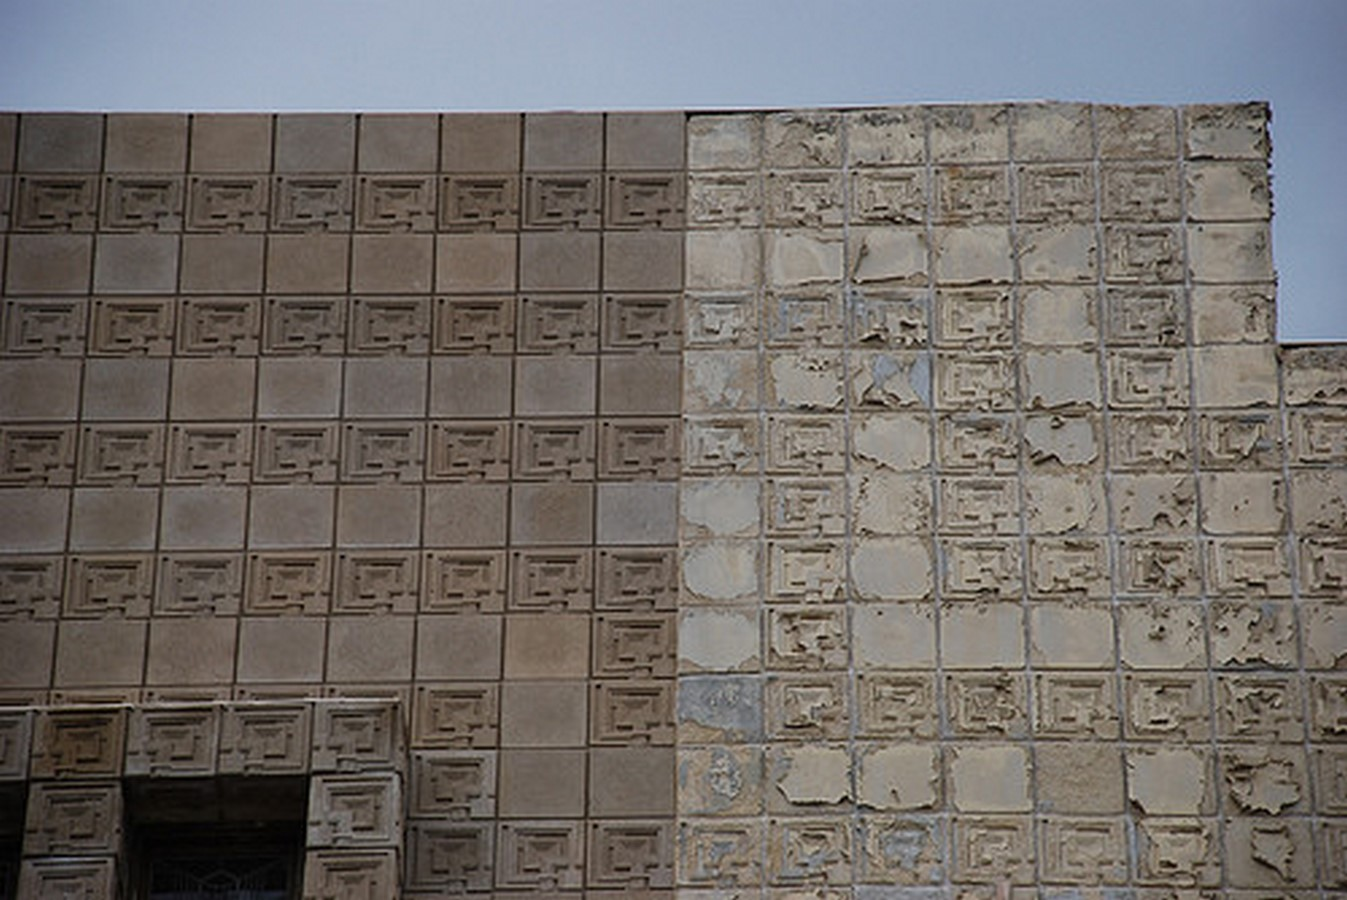 Ennis House by Frank Lloyd Wright A series of concrete block - Sheet9